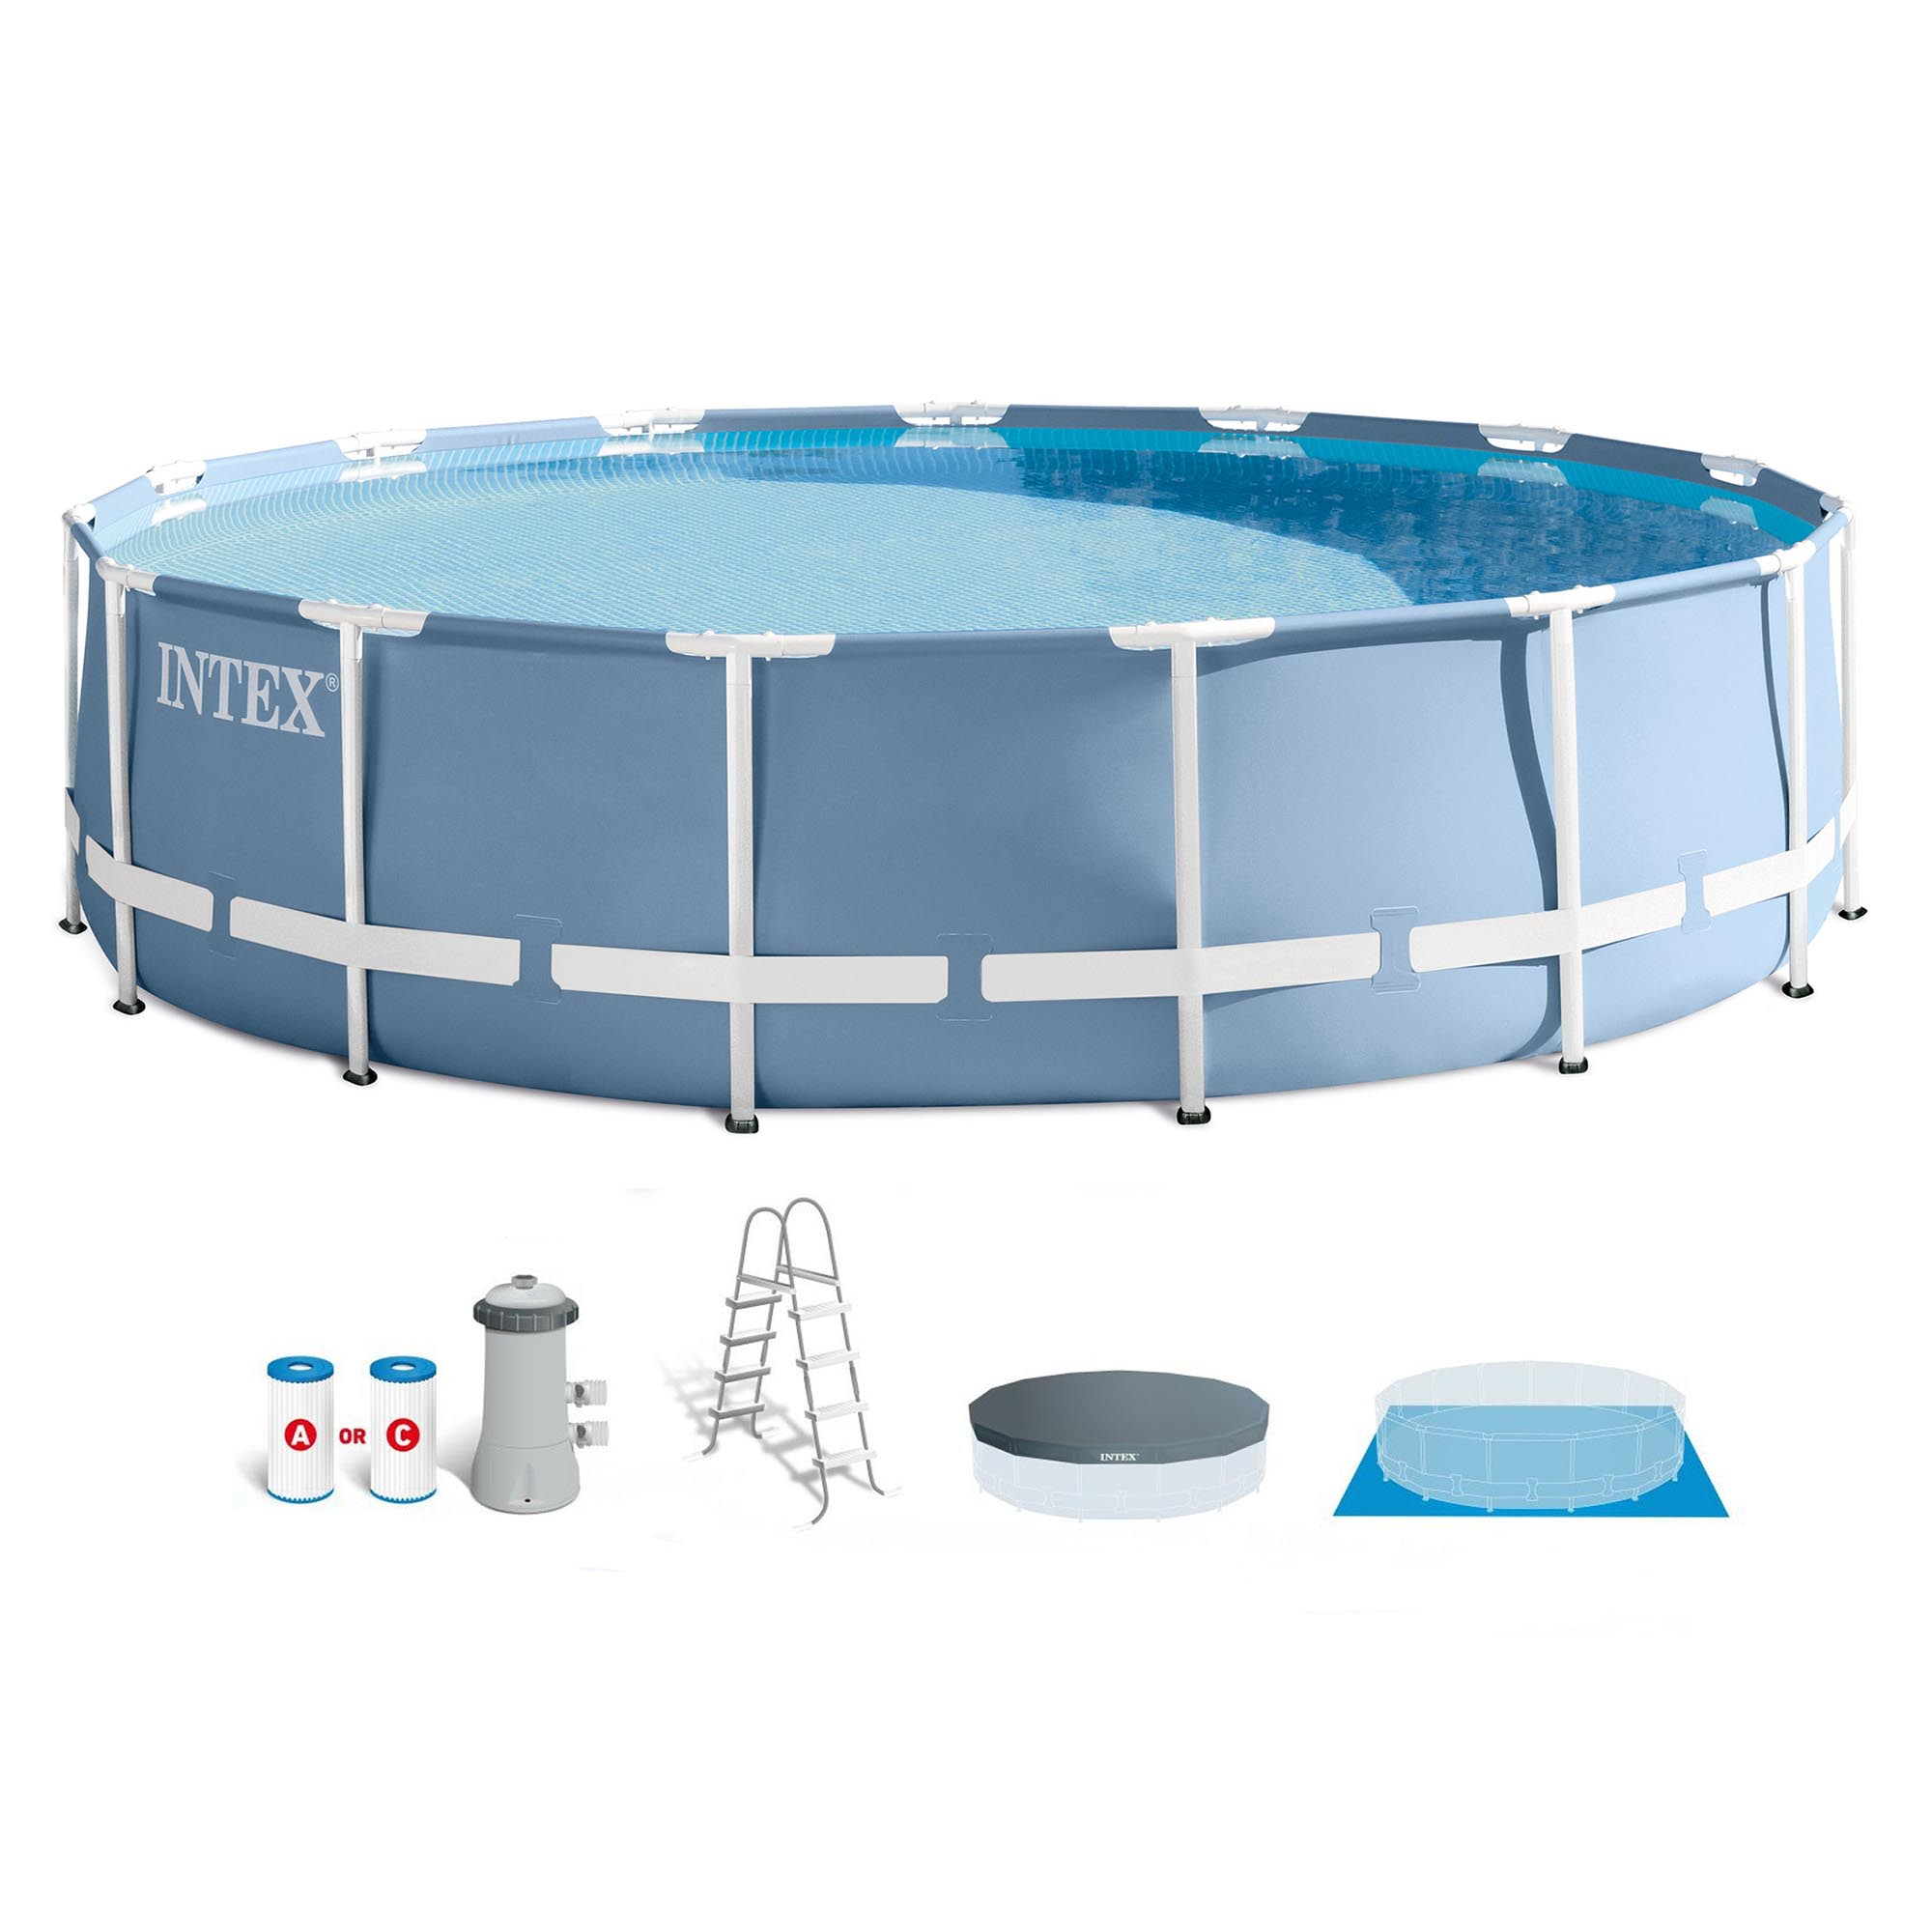 Intex 15 ft. x 42 in. Prism Frame Swimming Pool with 1,000 GPH Filter Pump by Intex